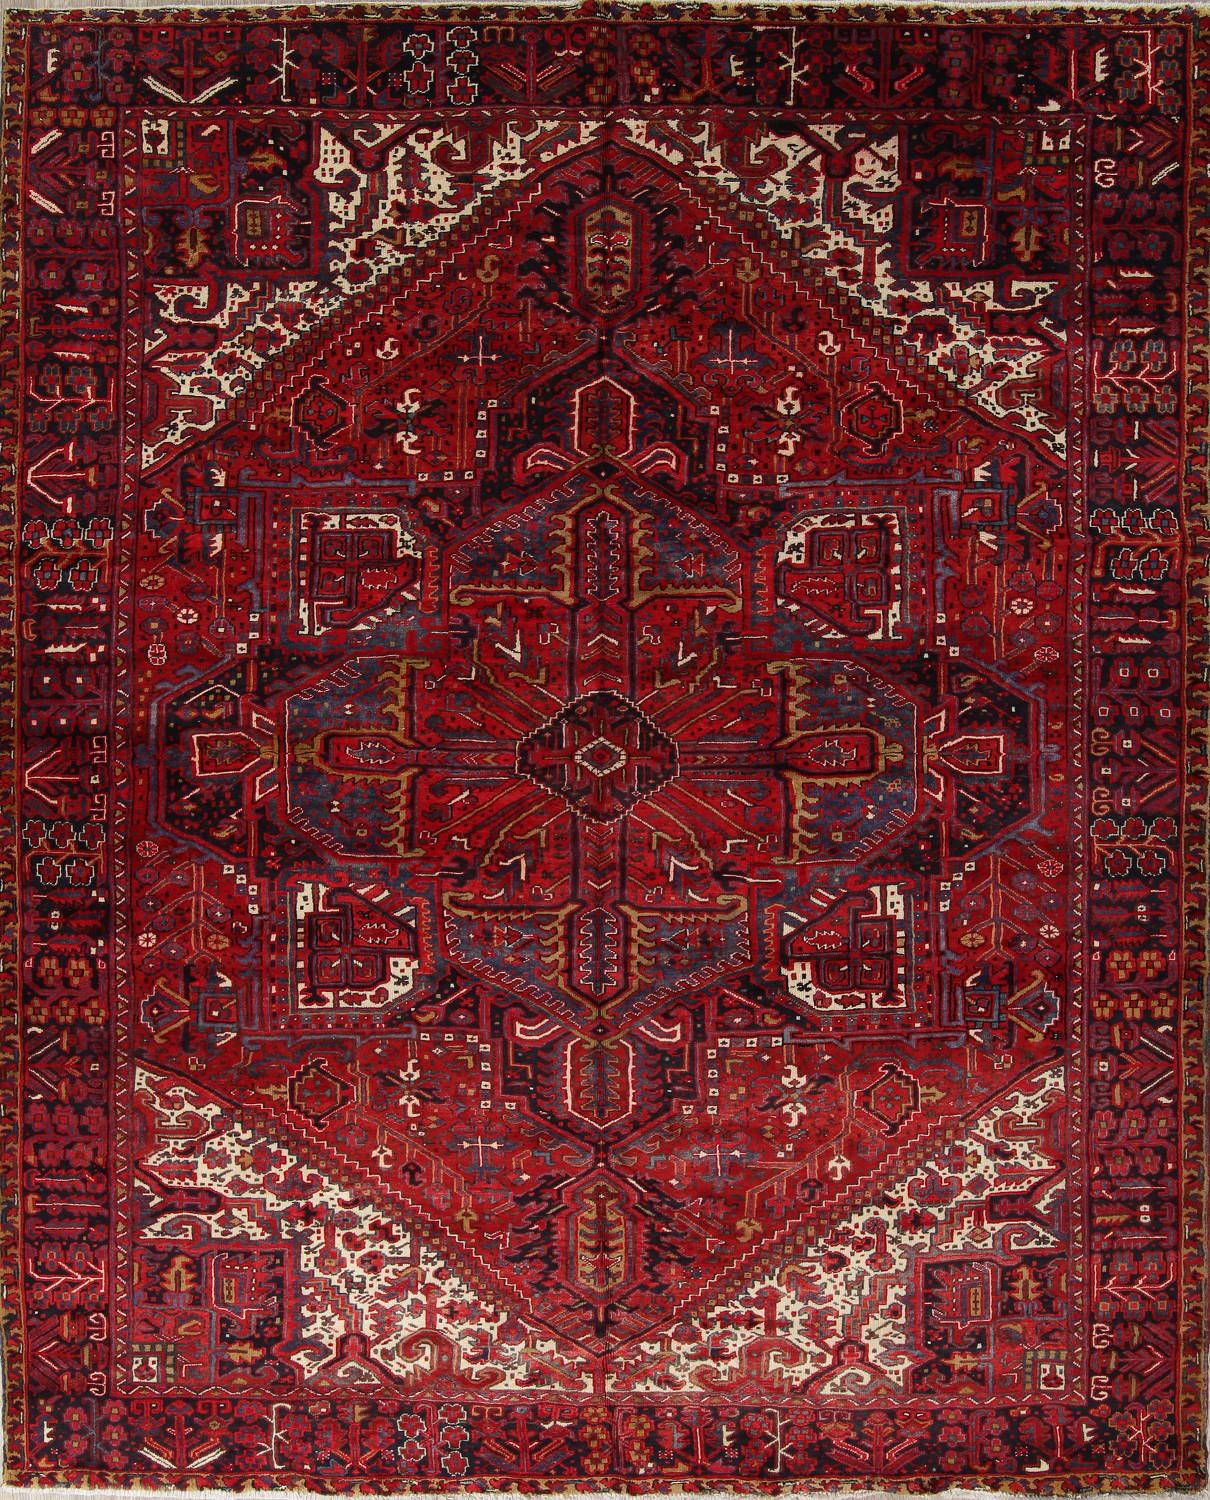 Geometric Red Heriz Persian Hand Knotted 10x13 Wool Area Rug Wool Area Rugs Rugs Area Rugs